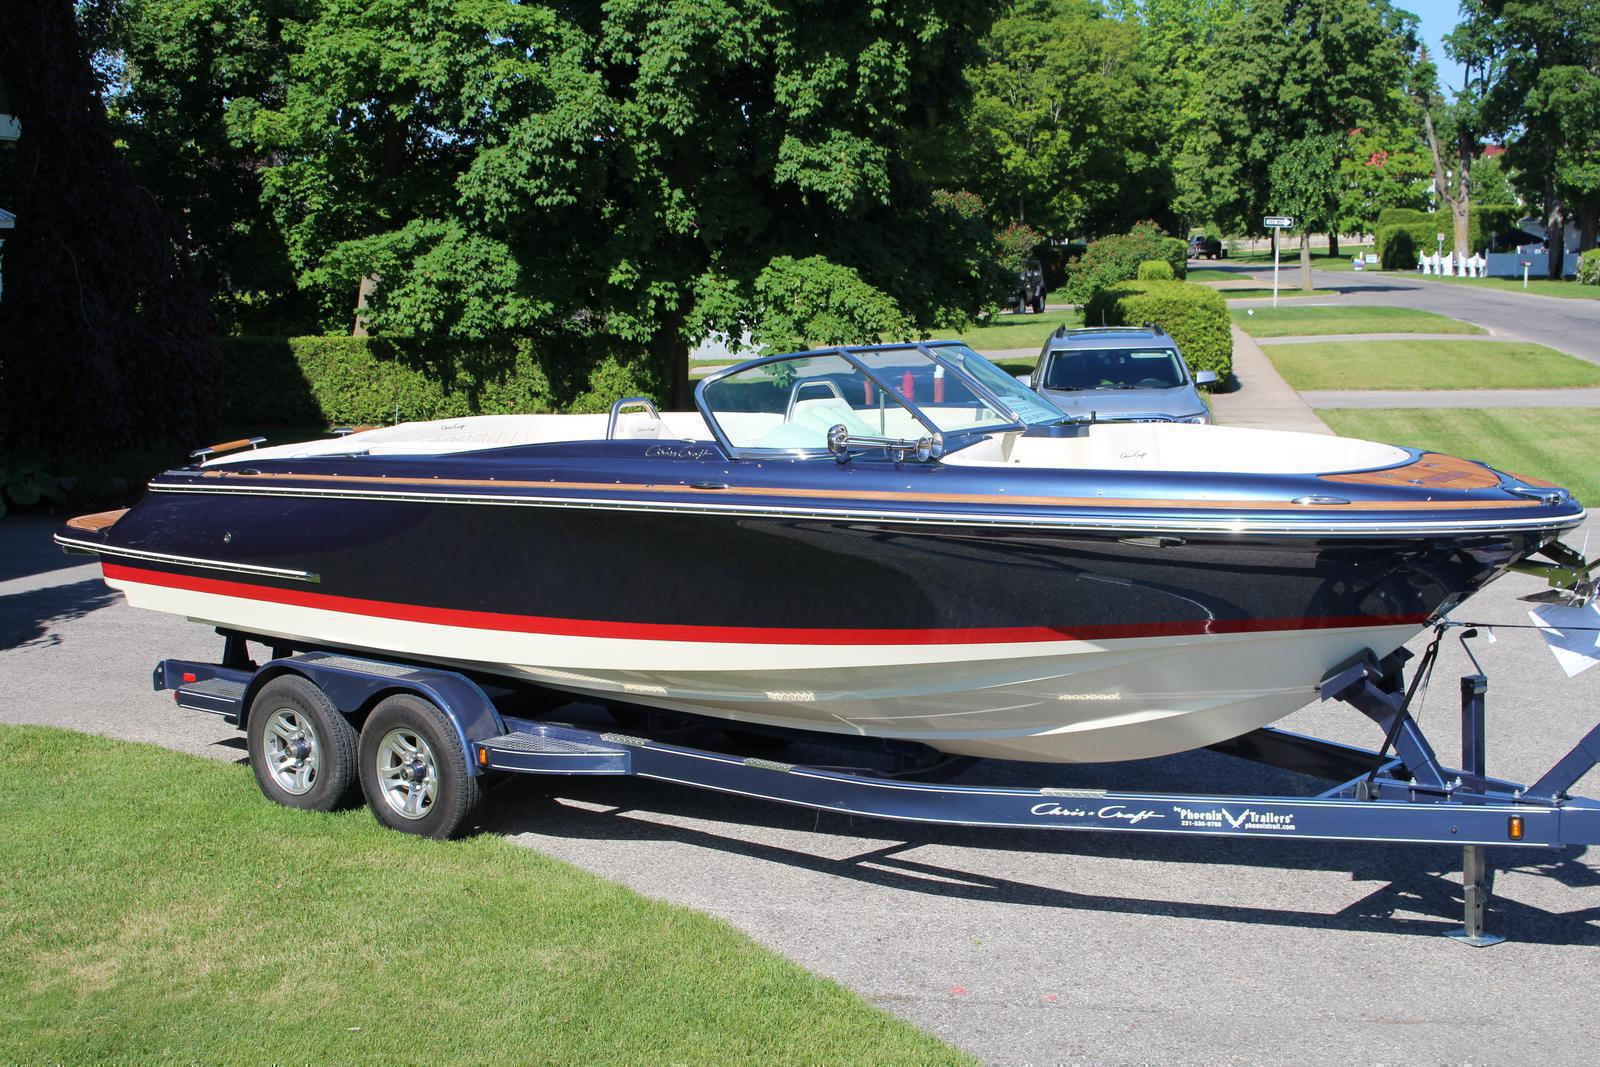 Inventory from Chris Craft Walstrom Marine